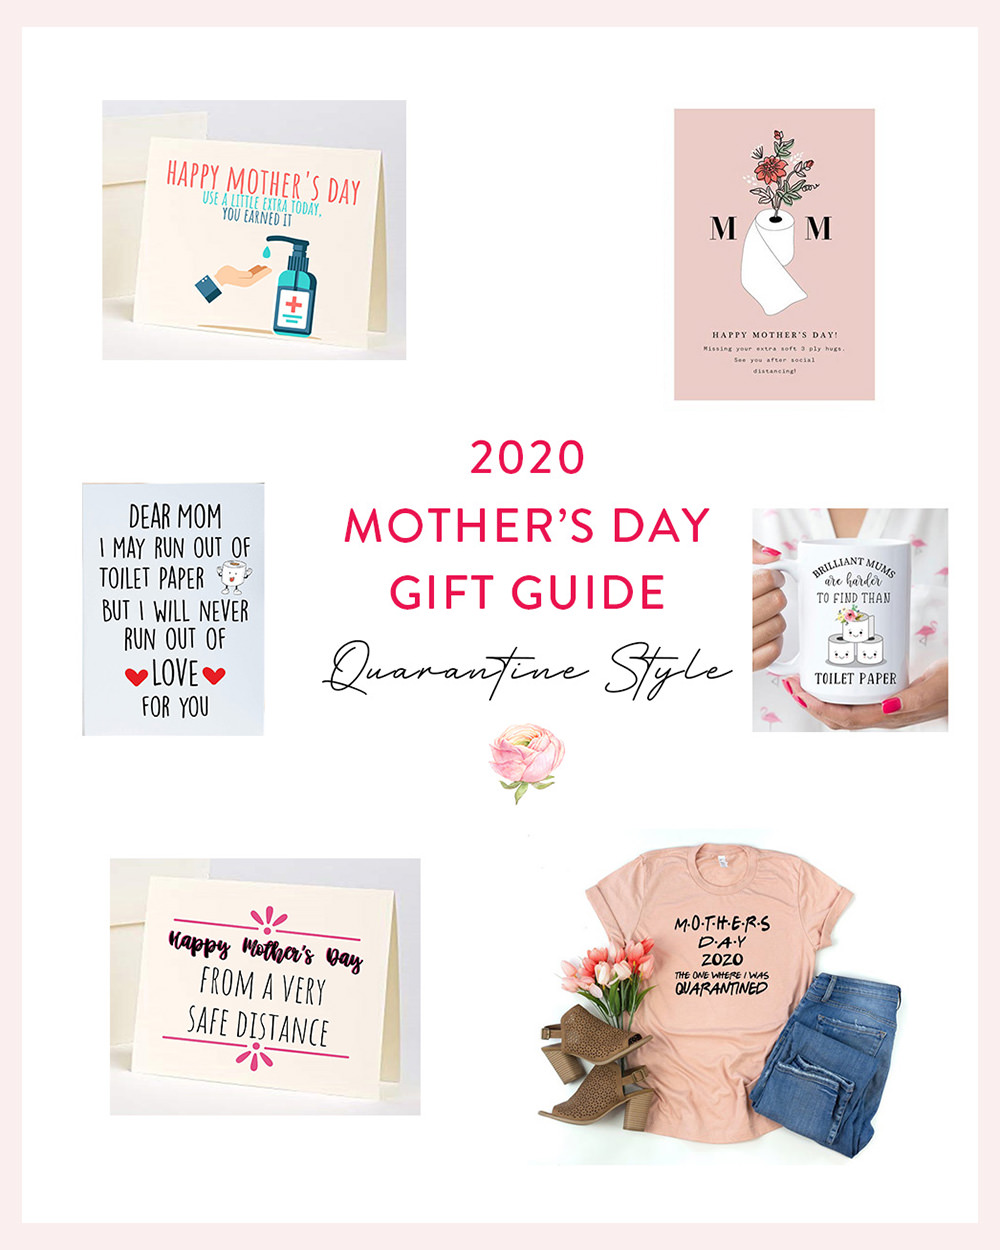 Mother's Day 2020 Gift Guide – Quarantine Style!